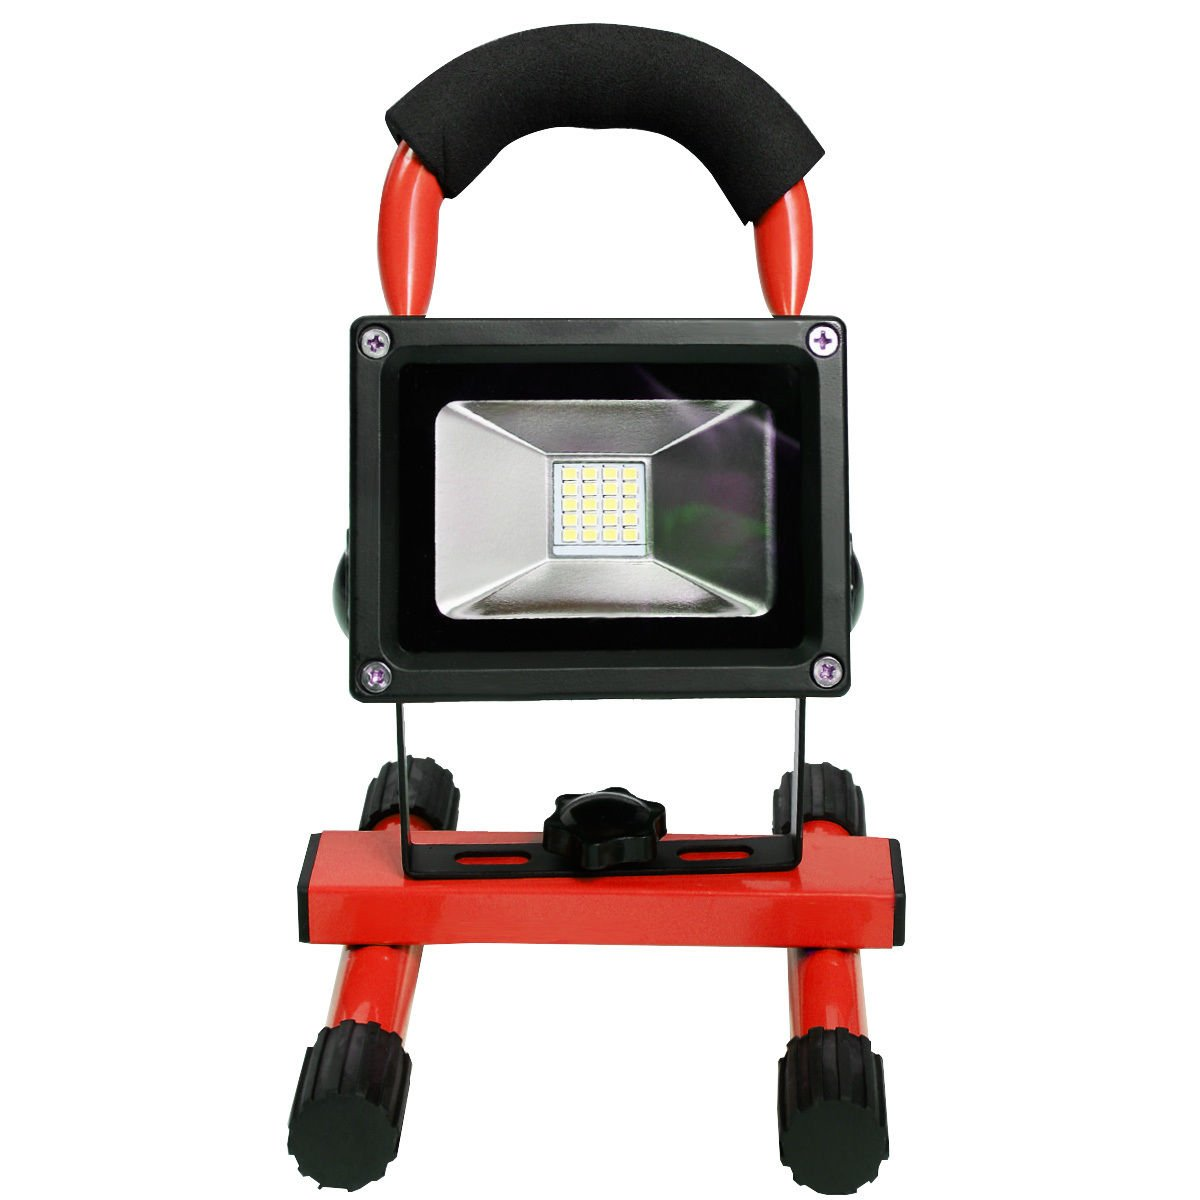 Red Portable 10W Cordless Work Light Rechargeable LED Flood Spot Camping Lamp by Marketworldcup (Image #2)